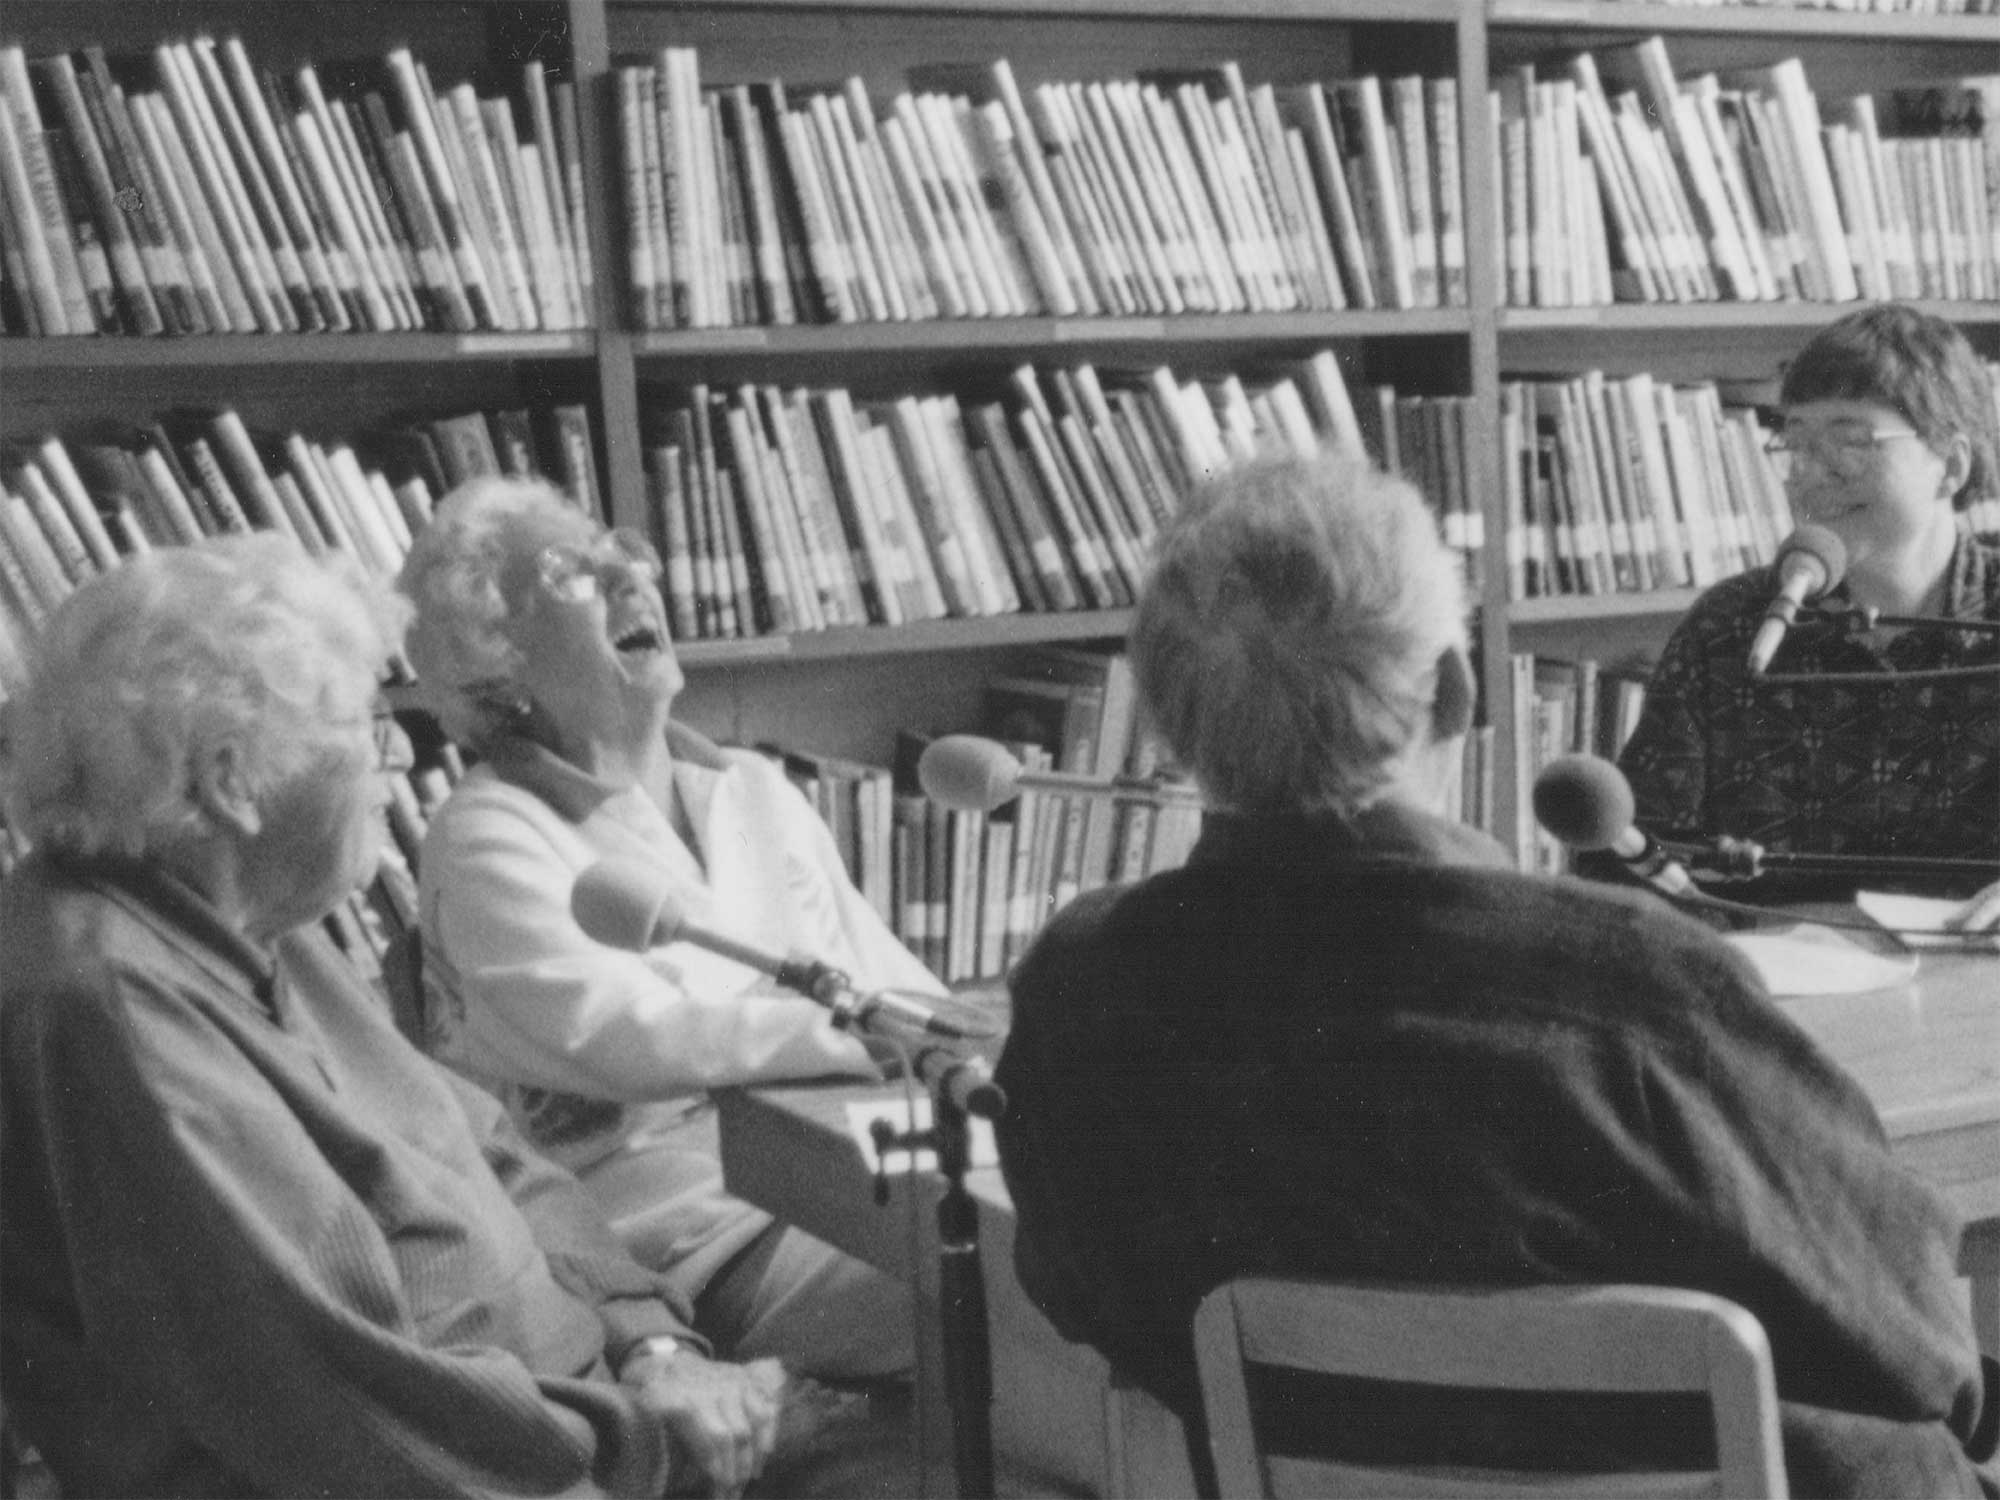 a black and white photo of four people sitting around a table with bookcases behind them, in conversation.